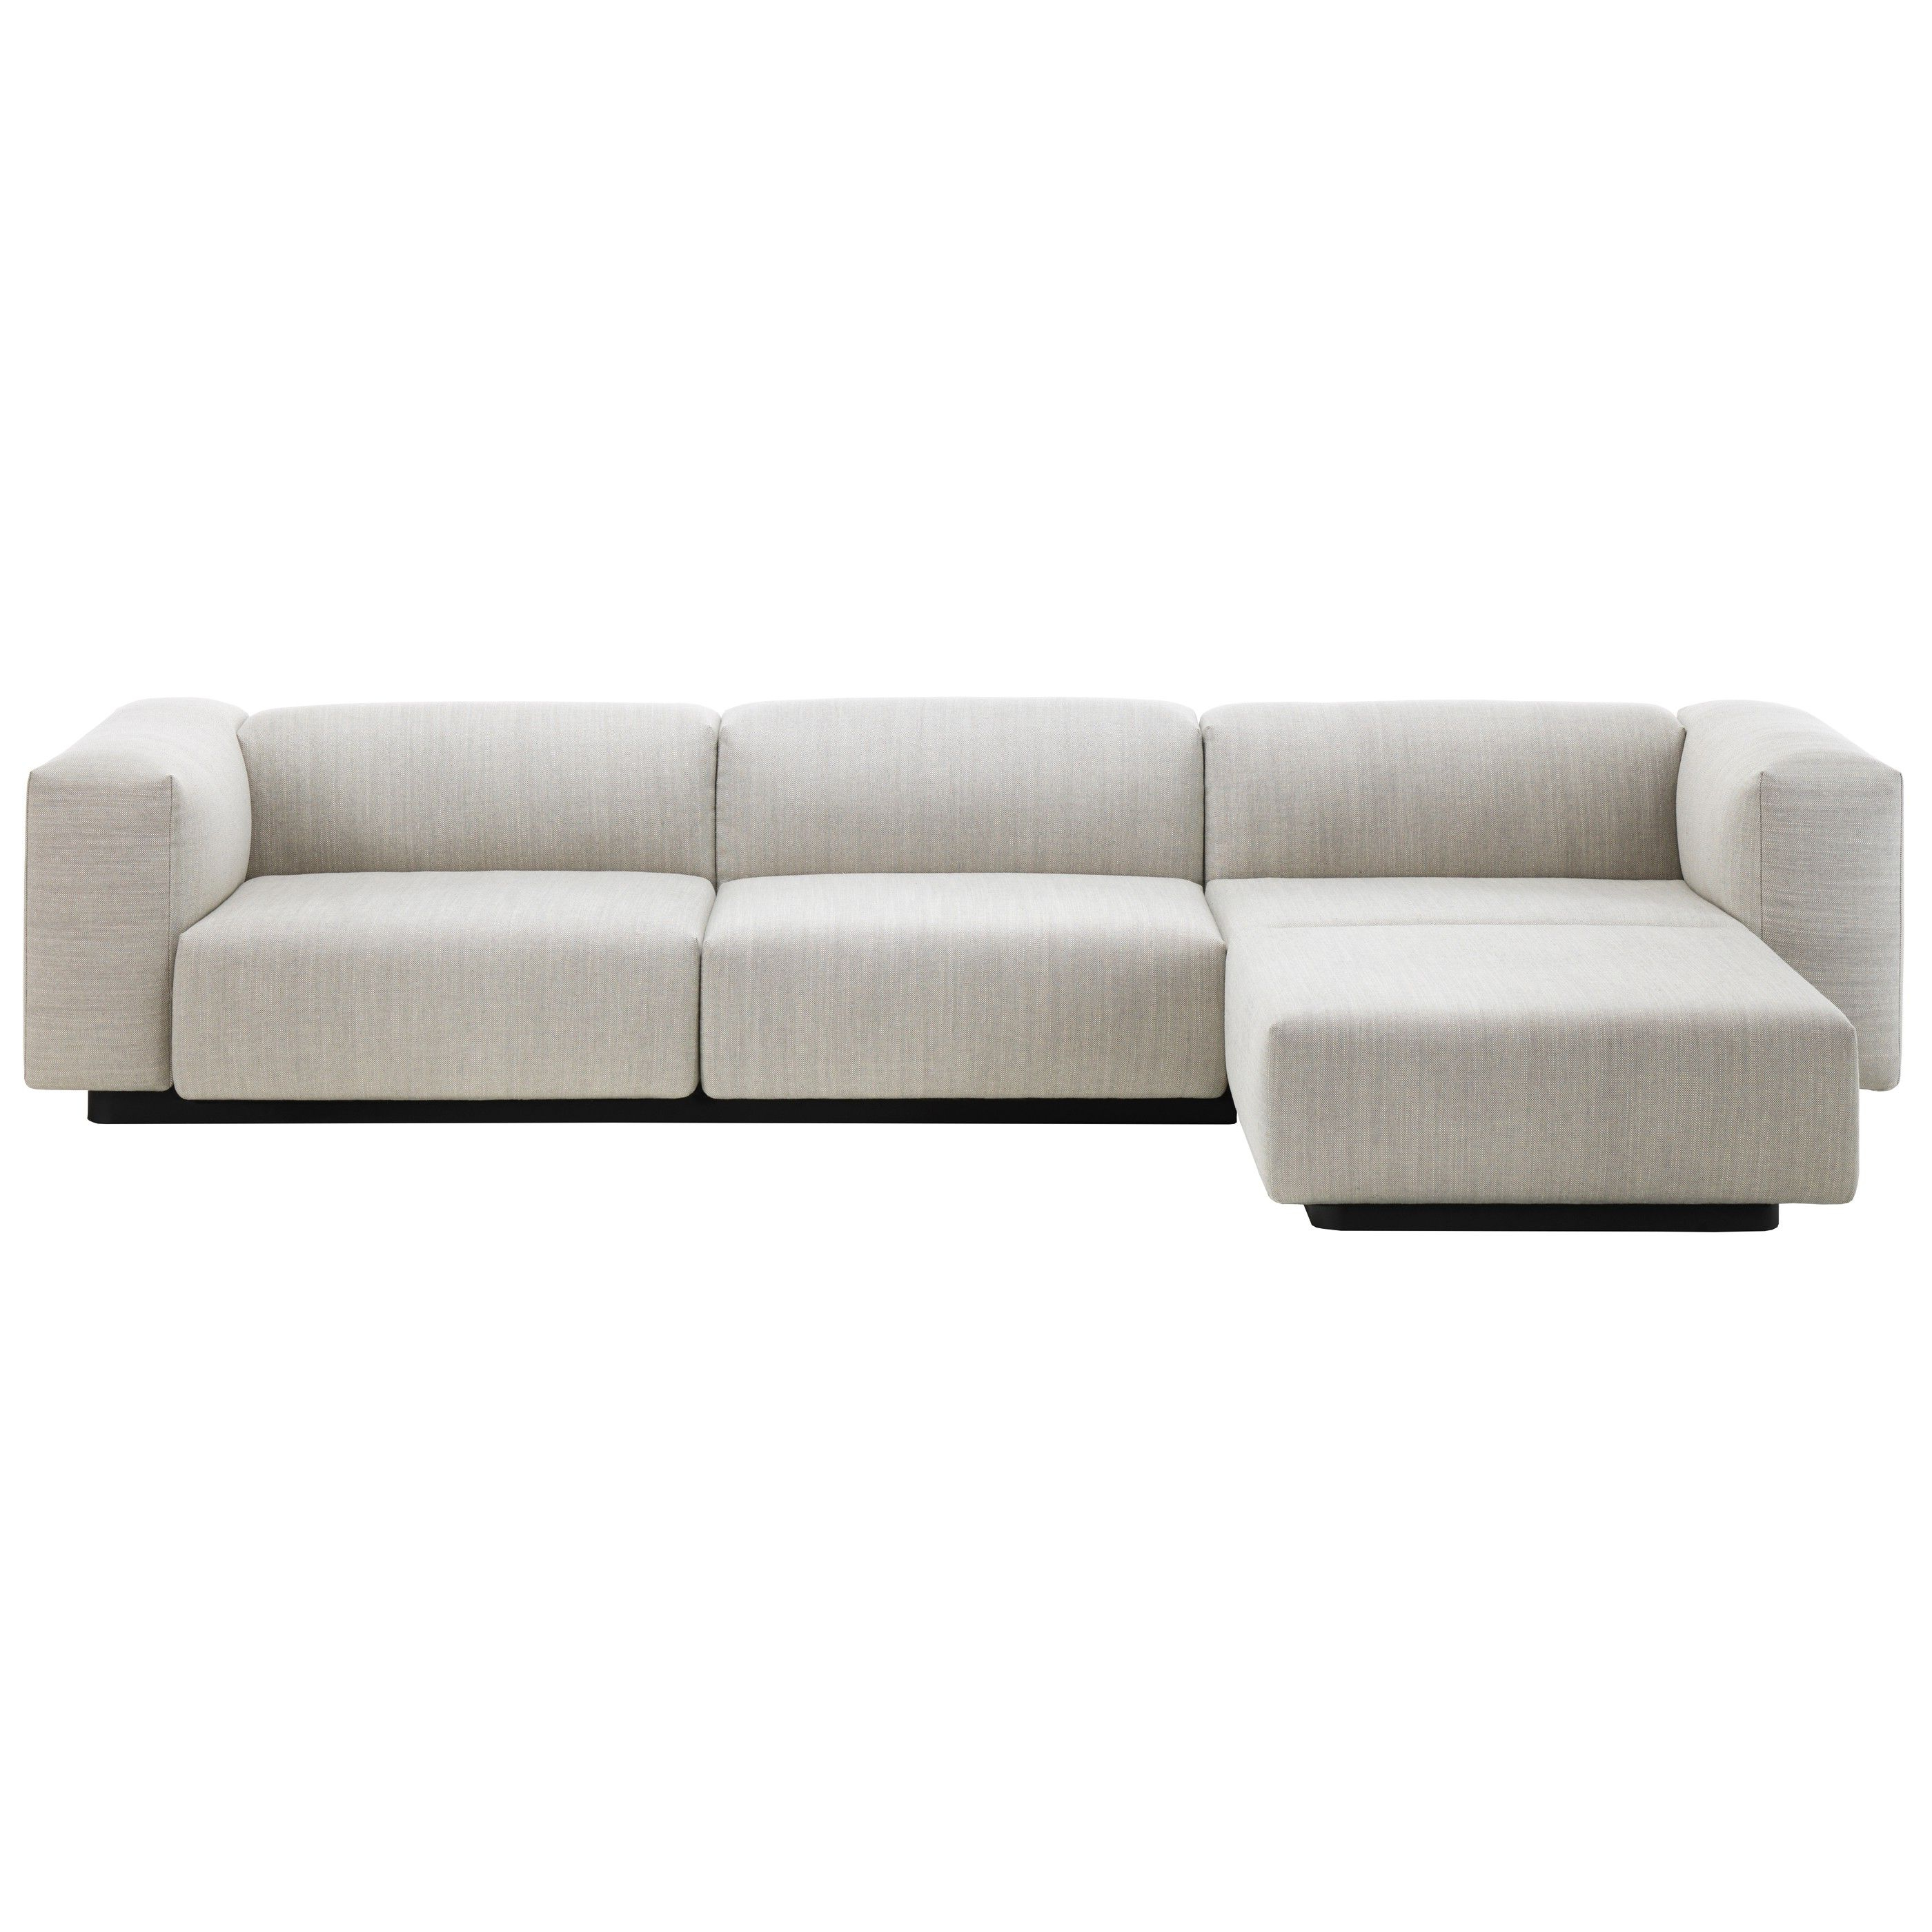 Sofa Chaiselongue E9dx Vitra soft Modular sofa Mit Chaise Longue Flinders Versendet Gratis